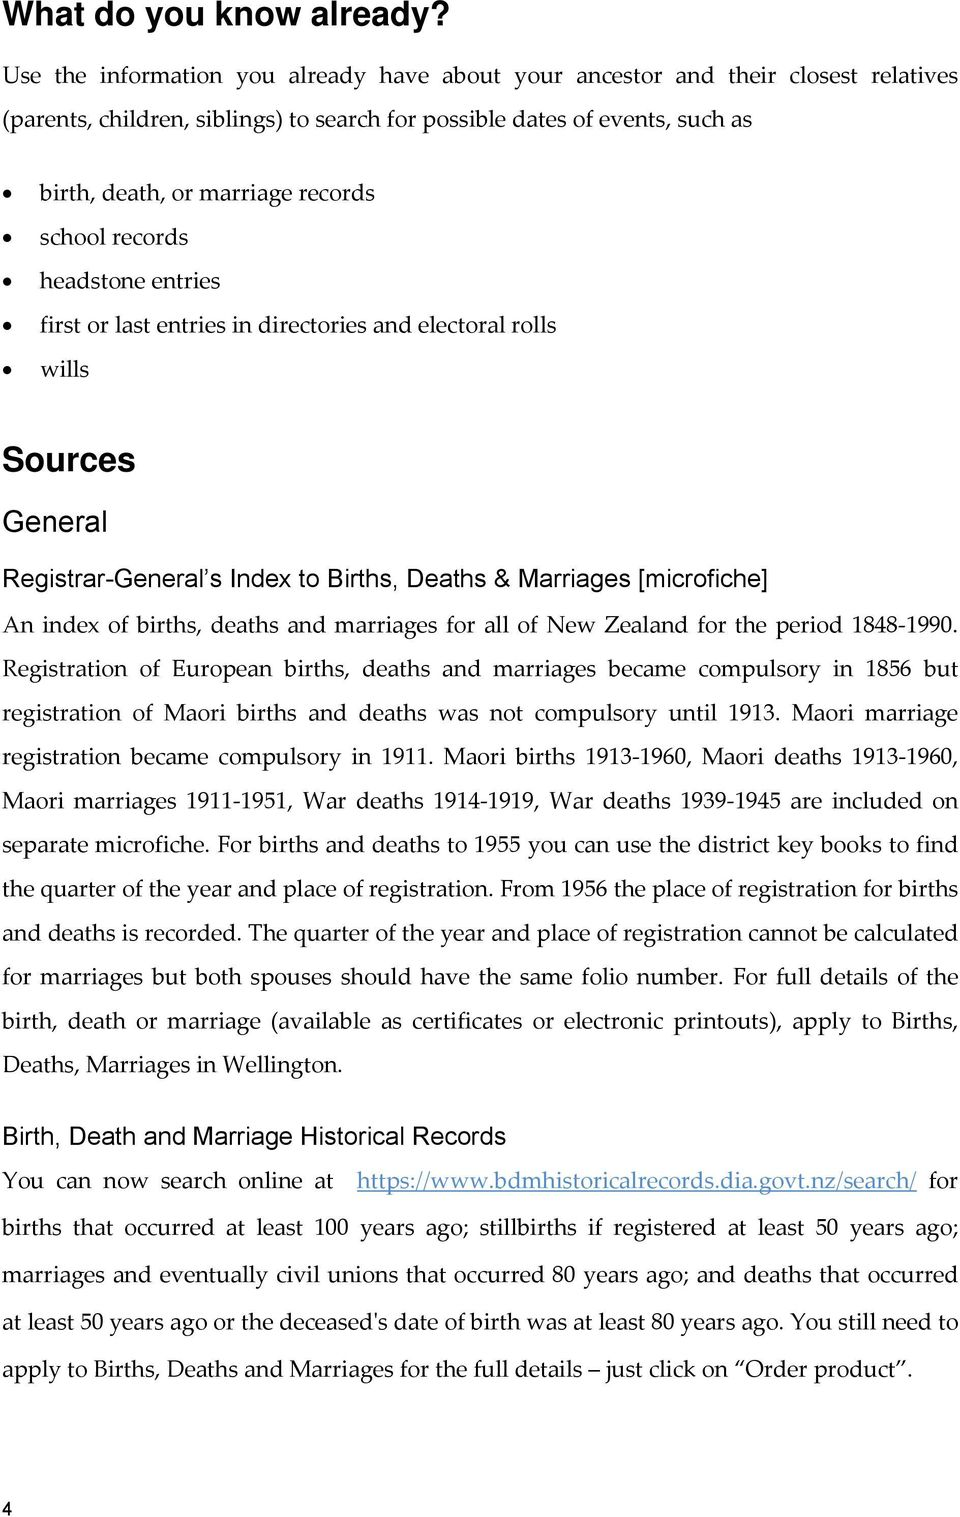 school records headstone entries first or last entries in directories and electoral rolls wills Sources General Registrar-General s Index to Births, Deaths & Marriages [microfiche] An index of